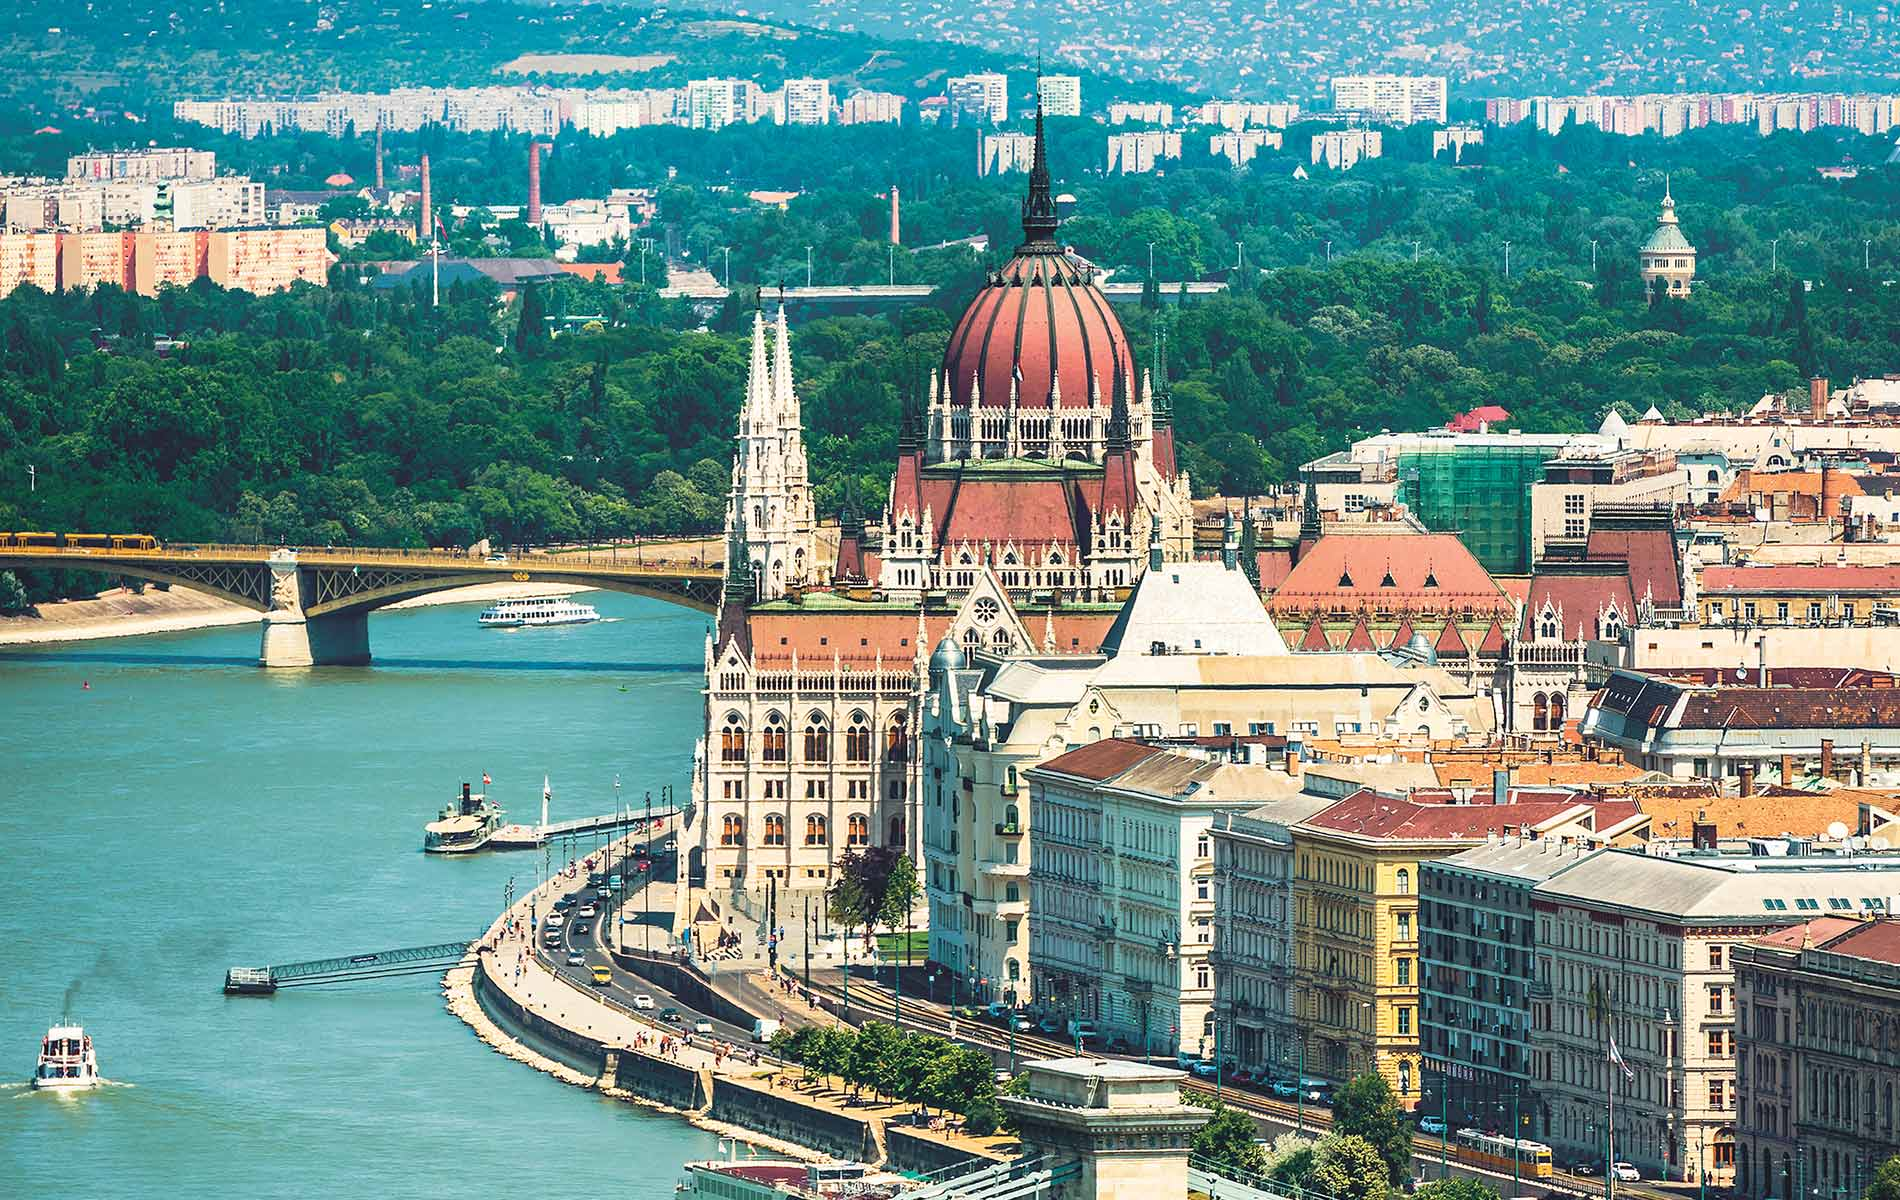 River cruising on the Danube River in Budapest VIE Magazine Destination Travel